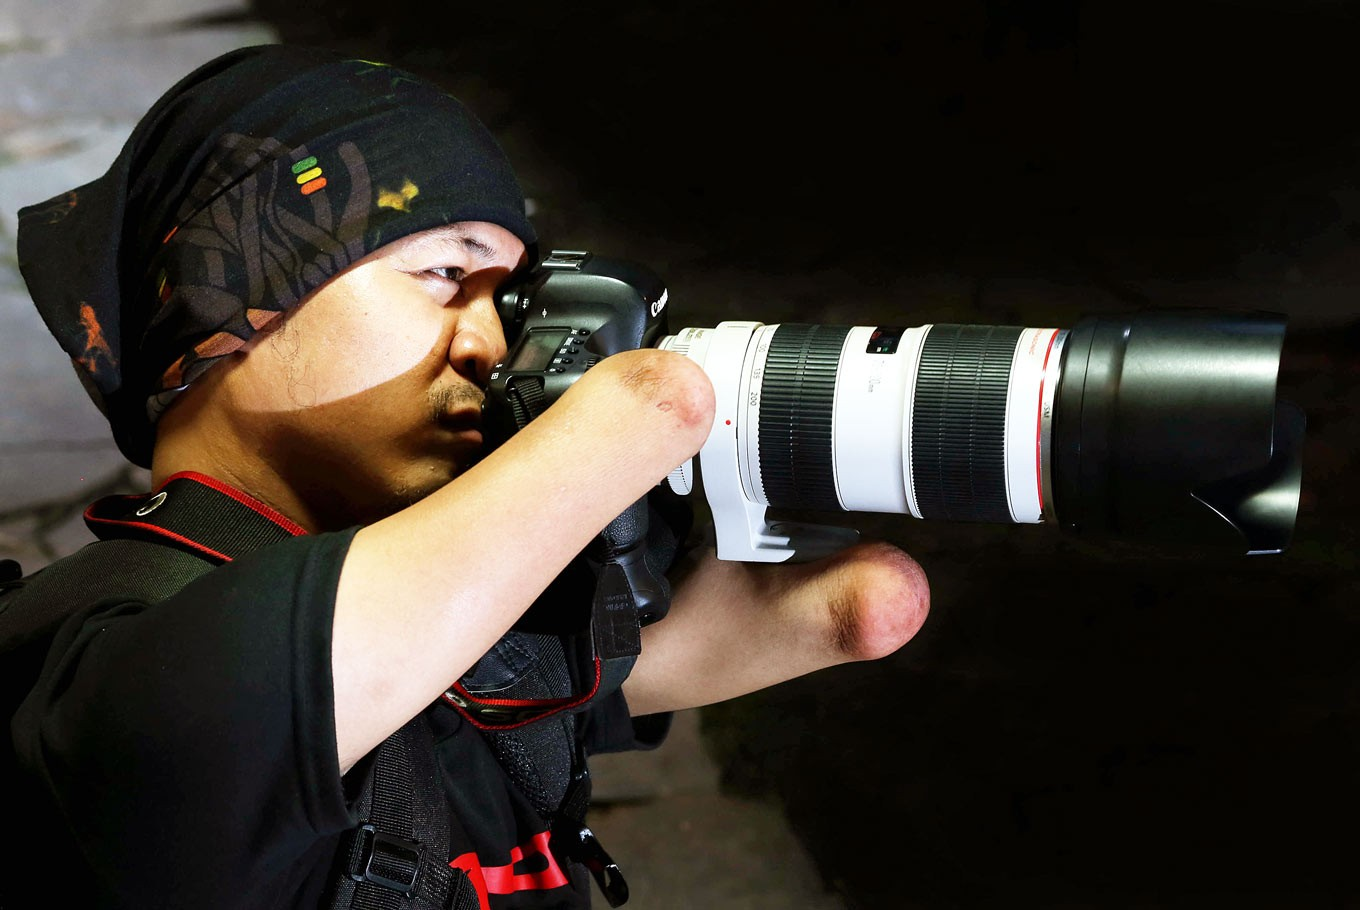 Bang Dzoel photographer with great zeal